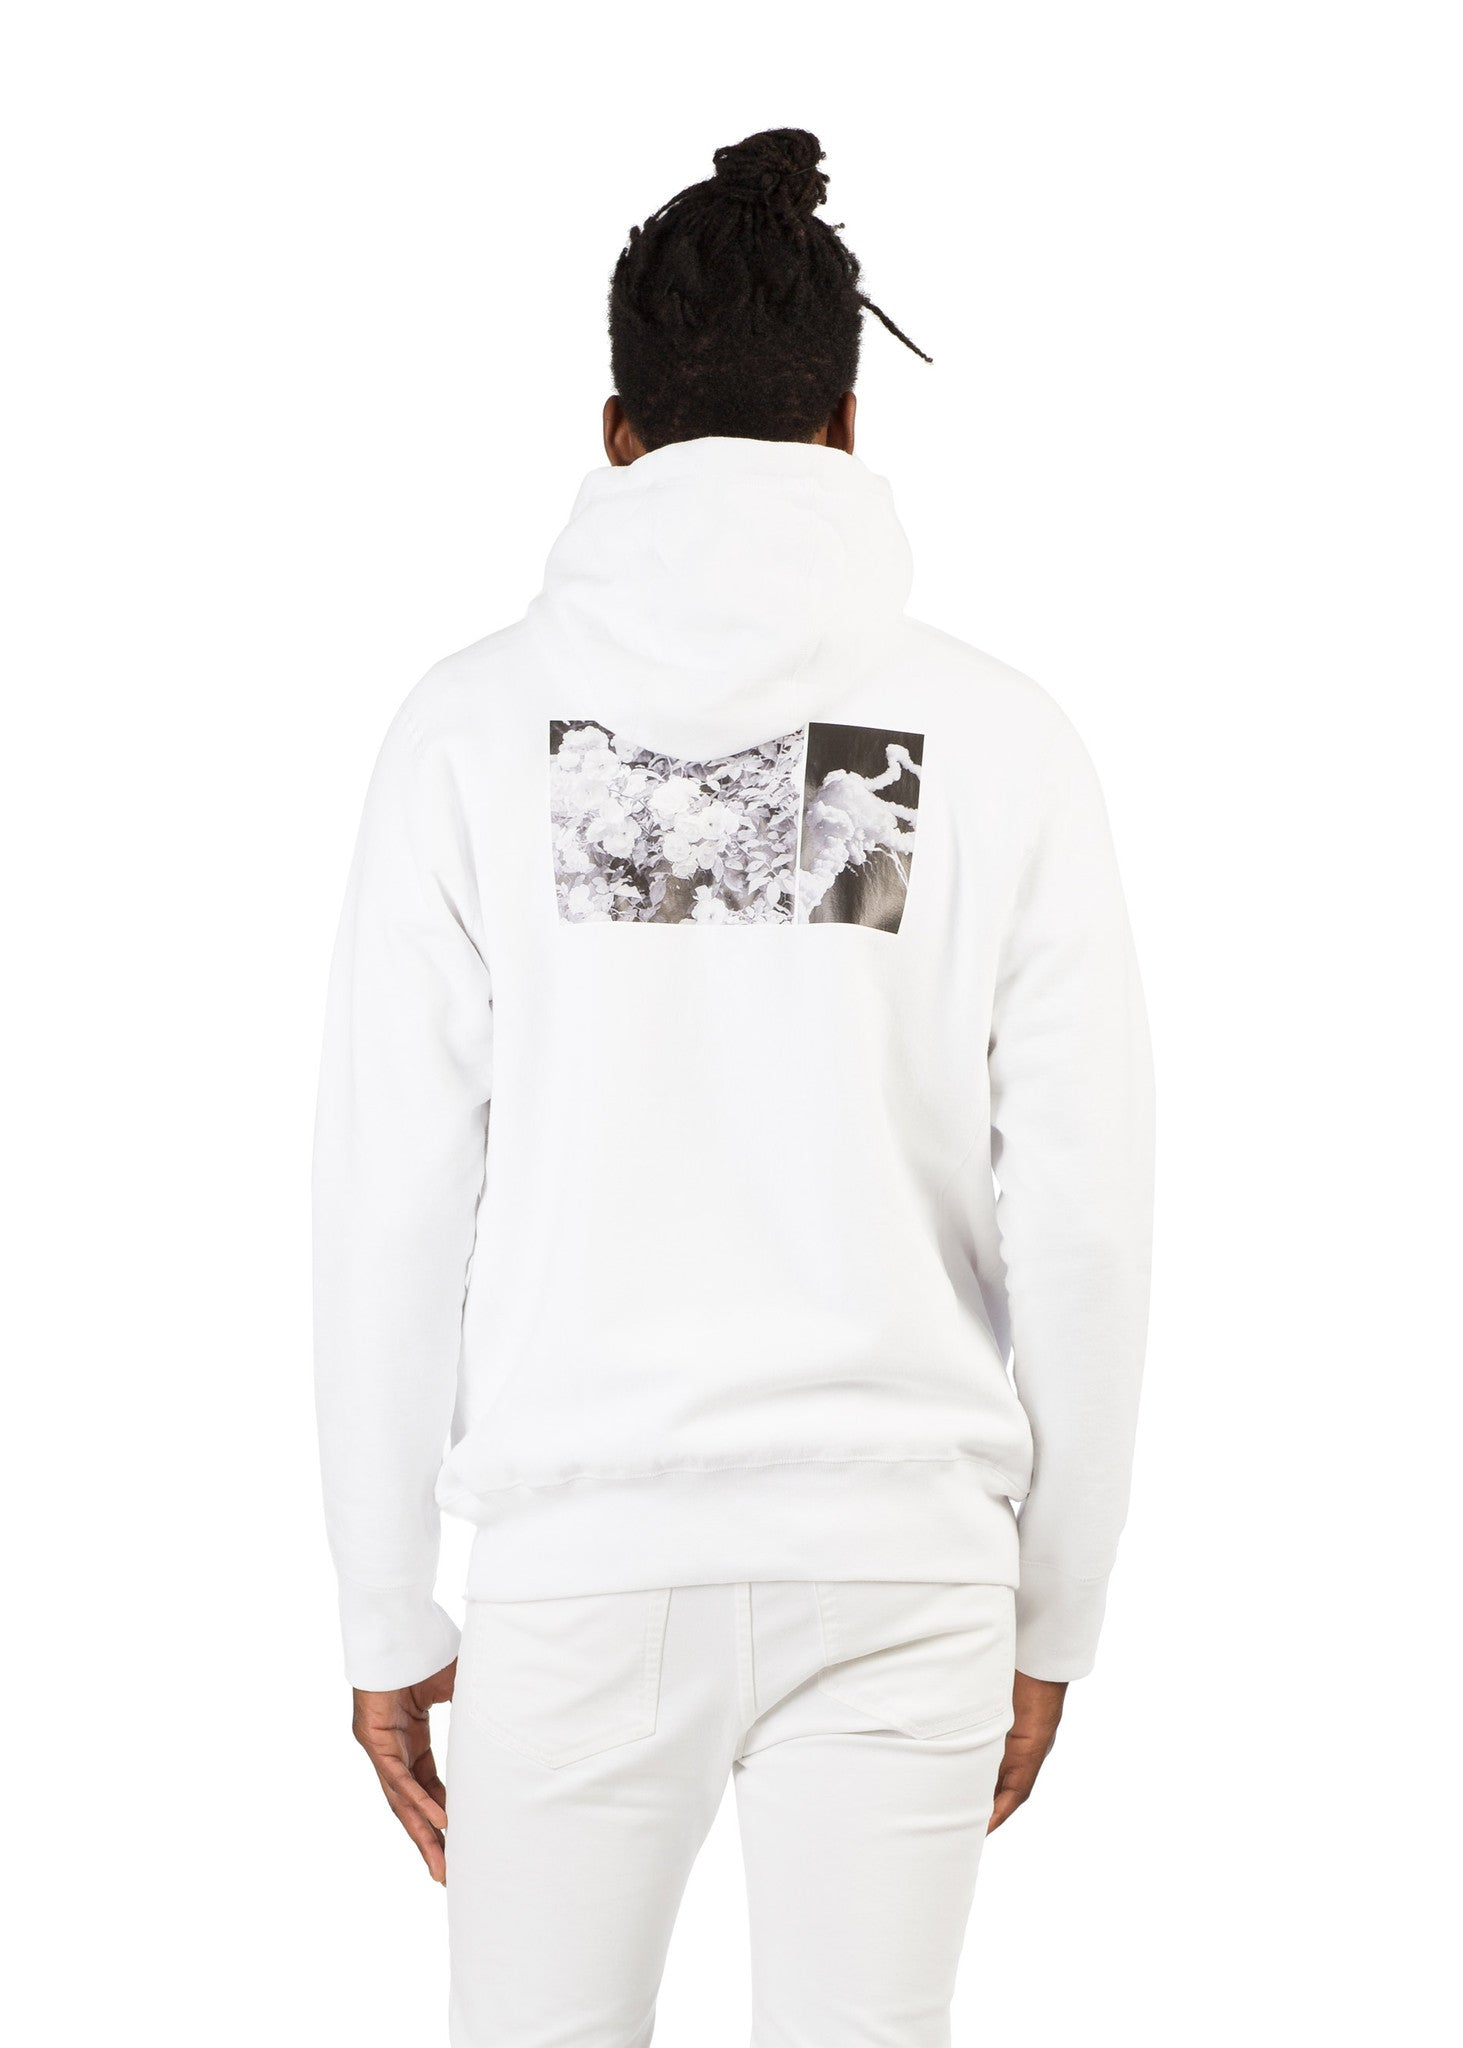 Take Care _ Hooded Sweatshirt